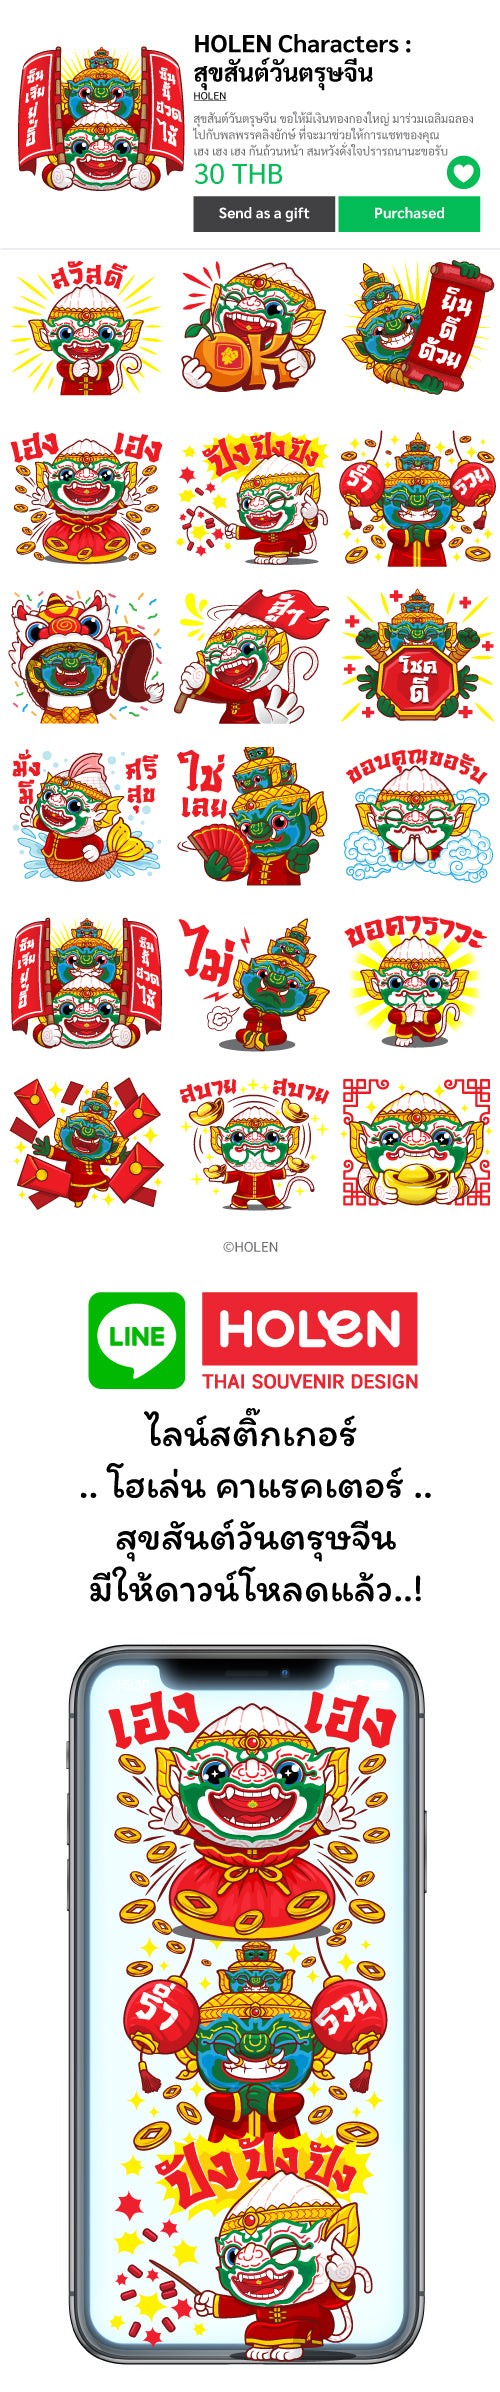 LINE Sticker : HOLEN Characters: Happy Chinese New Year